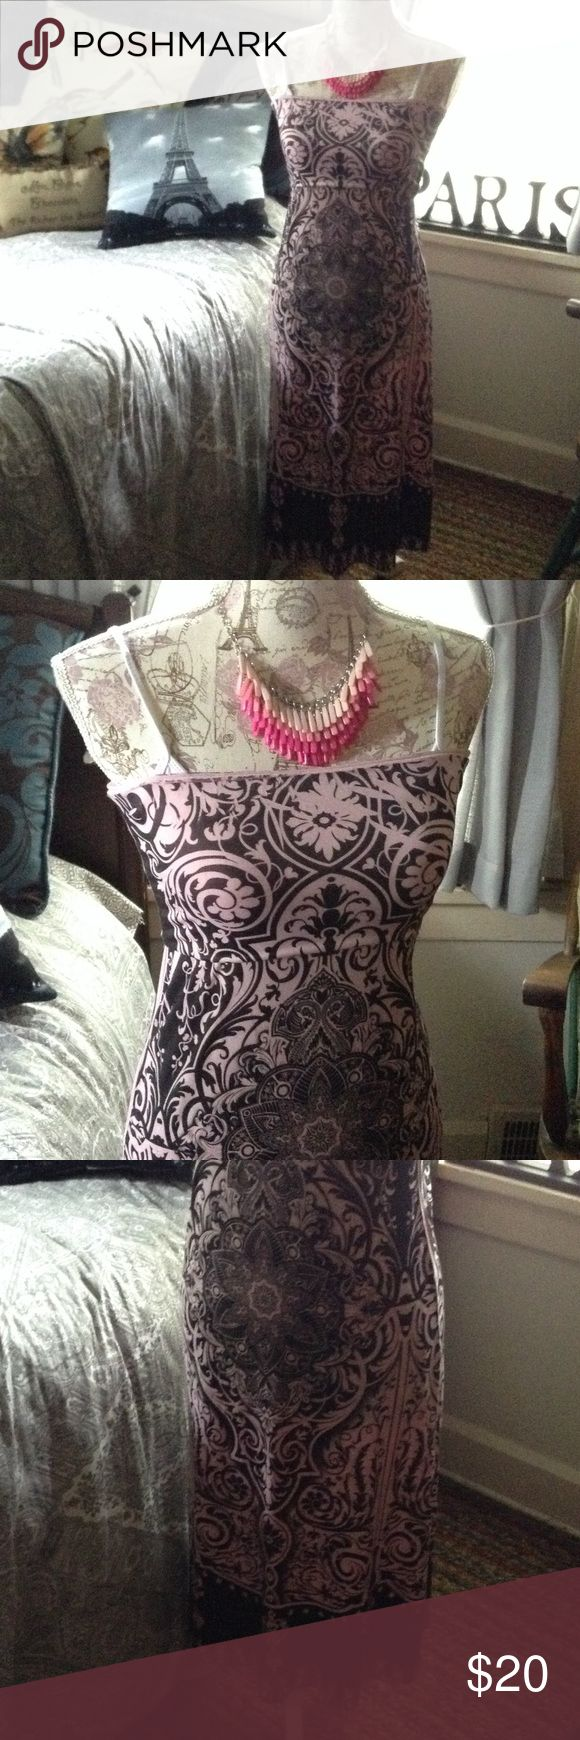 🆕 Strapless Tube Top Dress or Skirt💞✈️🏖🚢 BRAND NEW! Pretty Pink and Black Indian Boho Print Tube Dress. Can be Worn as a Skirt, also. Perfect for Travel! Casa Lee Brand Size Small Casa Lee Dresses